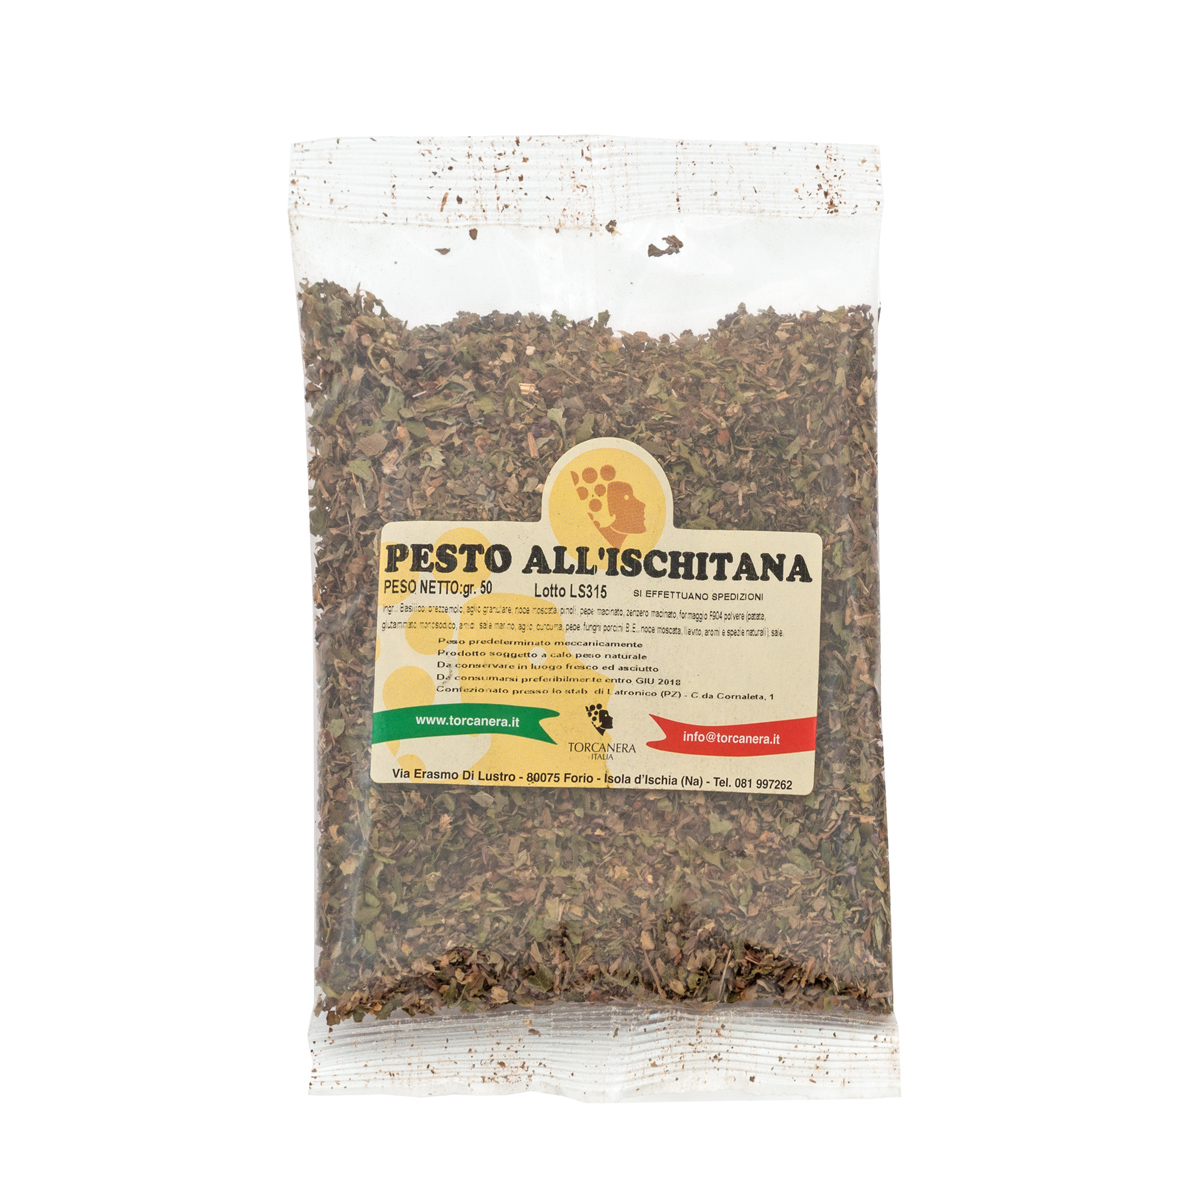 Pesto all'Ischitana